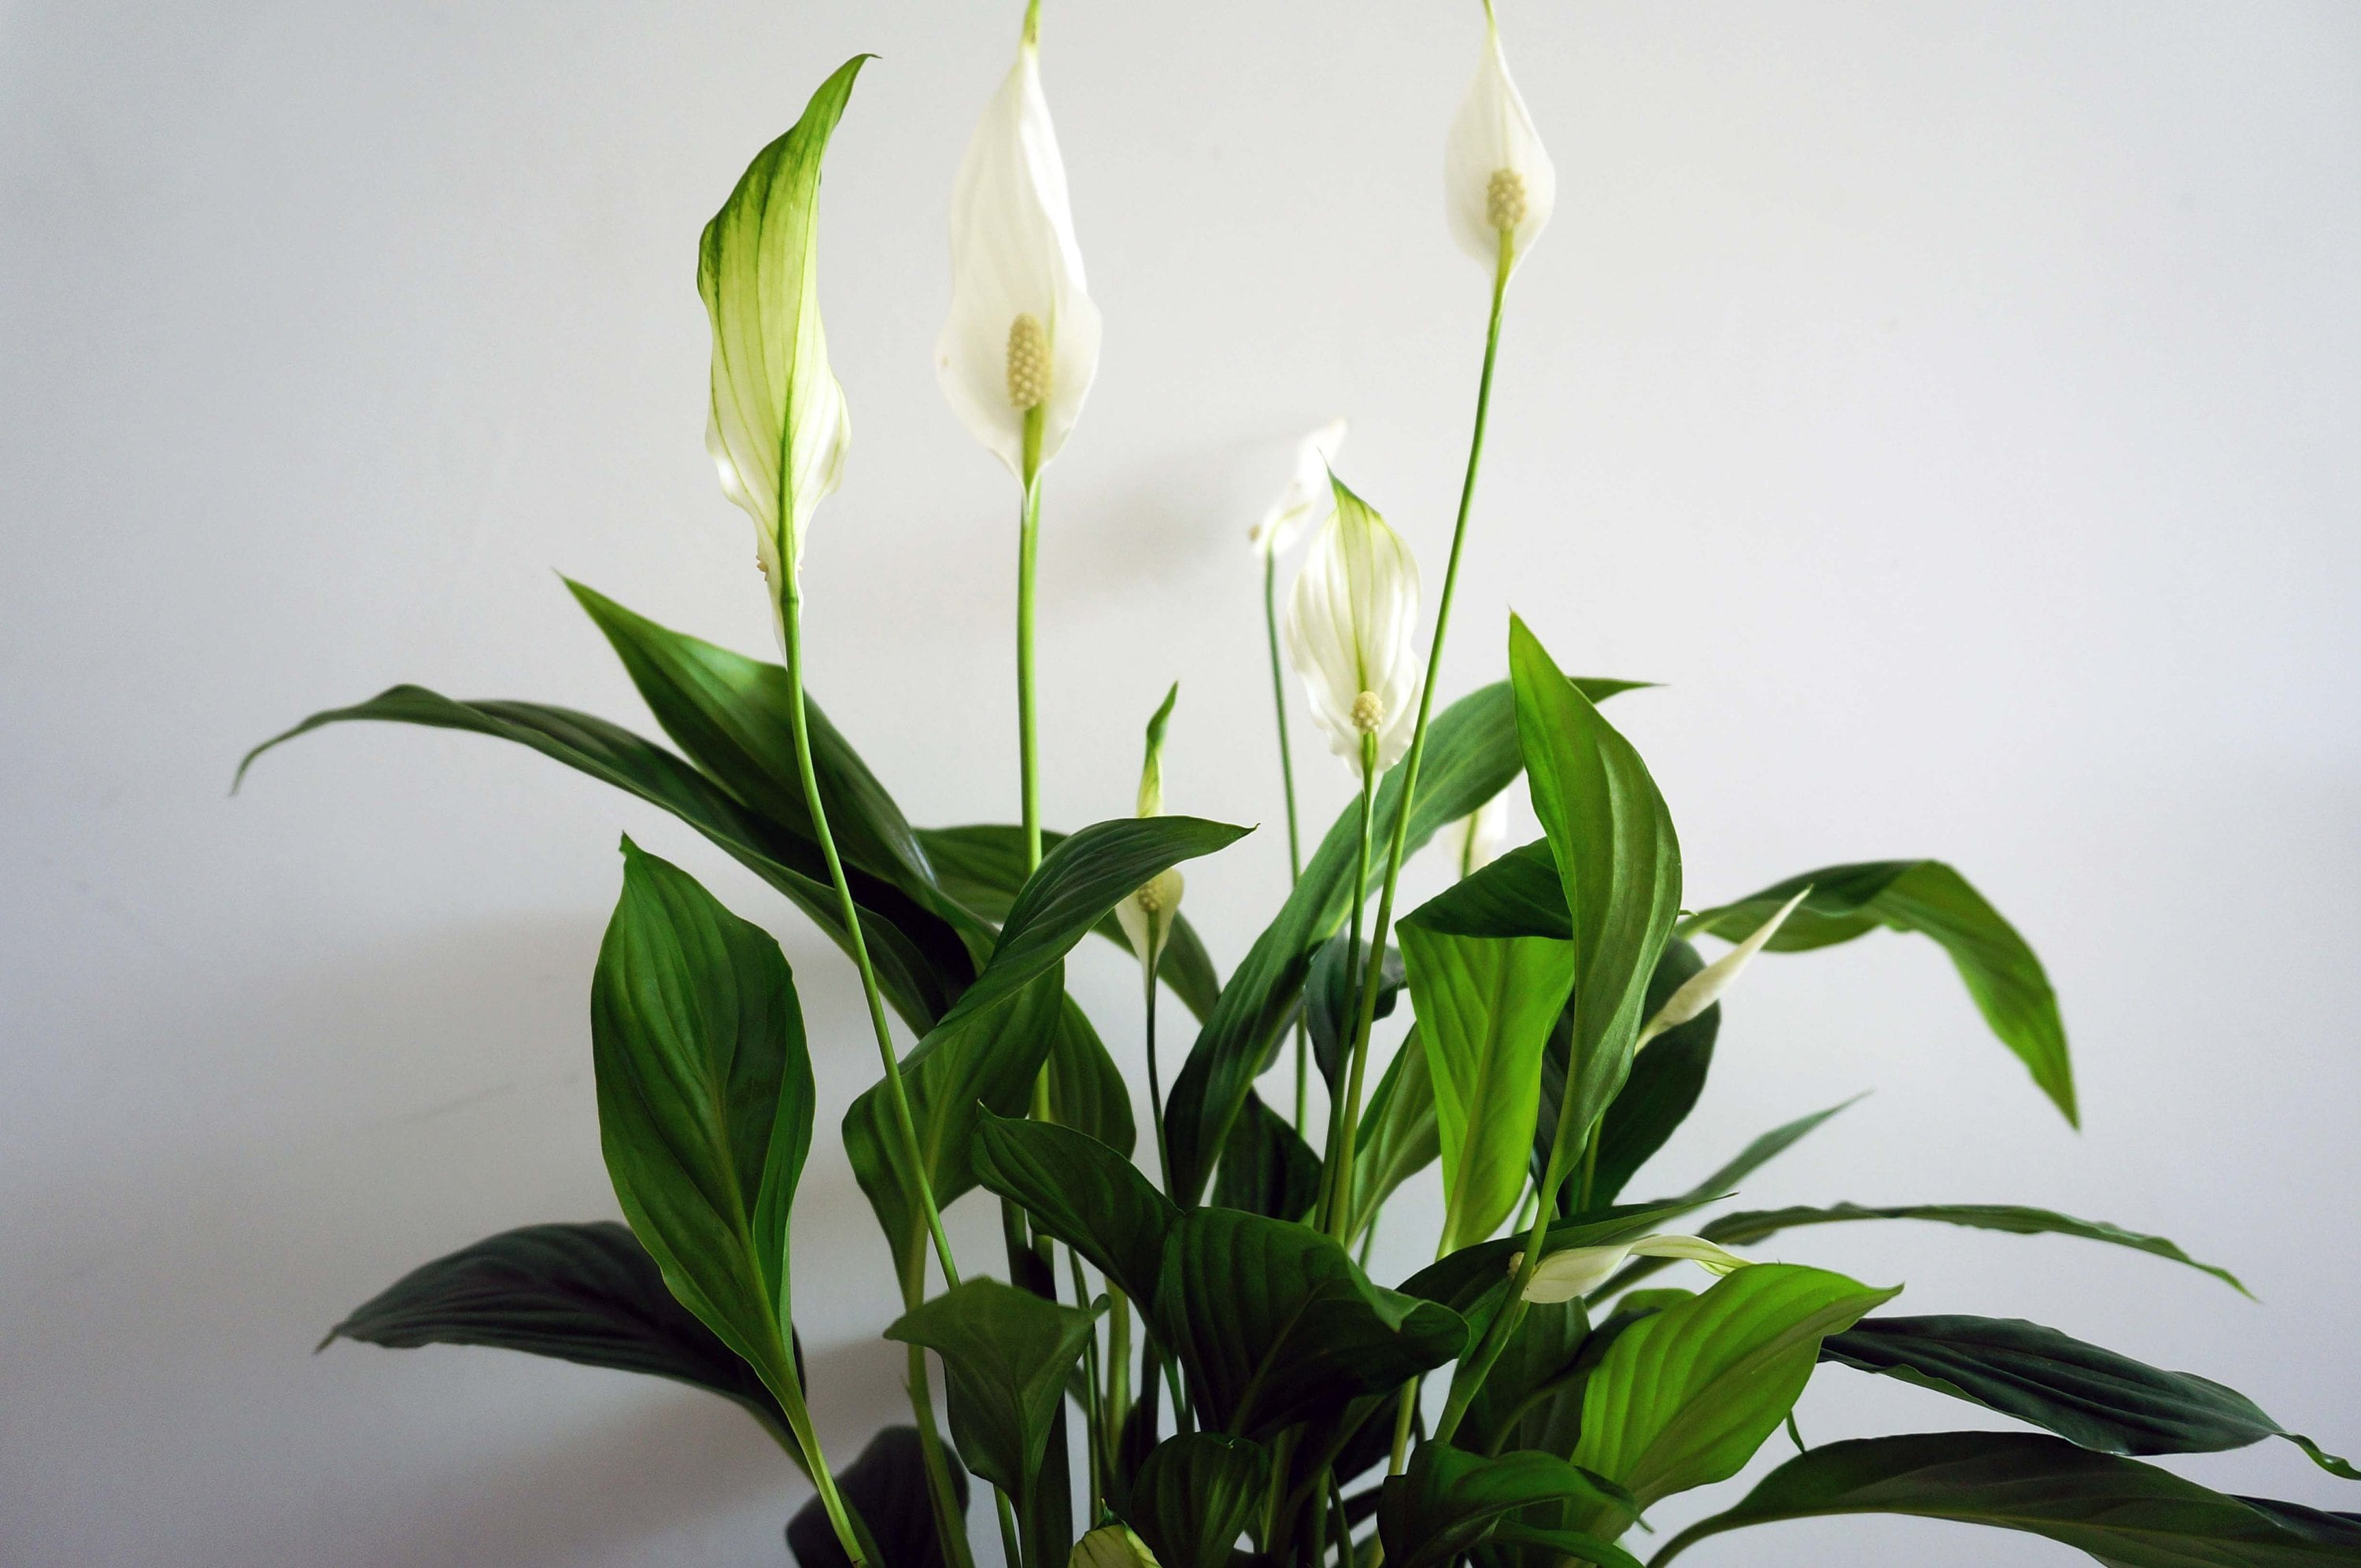 Peace Lily House Plant, Air Purifying Plant, Easy Care Plant, Low Light on peace lily family plant, chinese evergreen house plant, droopy peace lily plant, funeral peace lily plant, peace lily potted plant, peace lily plant benefits, classic peace lily plant, black bamboo potted plant, white and green leaves house plant, croton house plant, peace plant brown leaves, dragon plant, holly house plant, zamiifolia house plant, problems with peace lily plant, weeping fig house plant, marginata house plant, artificial bamboo house plant, black gold lily plant, pineapple plant house plant,